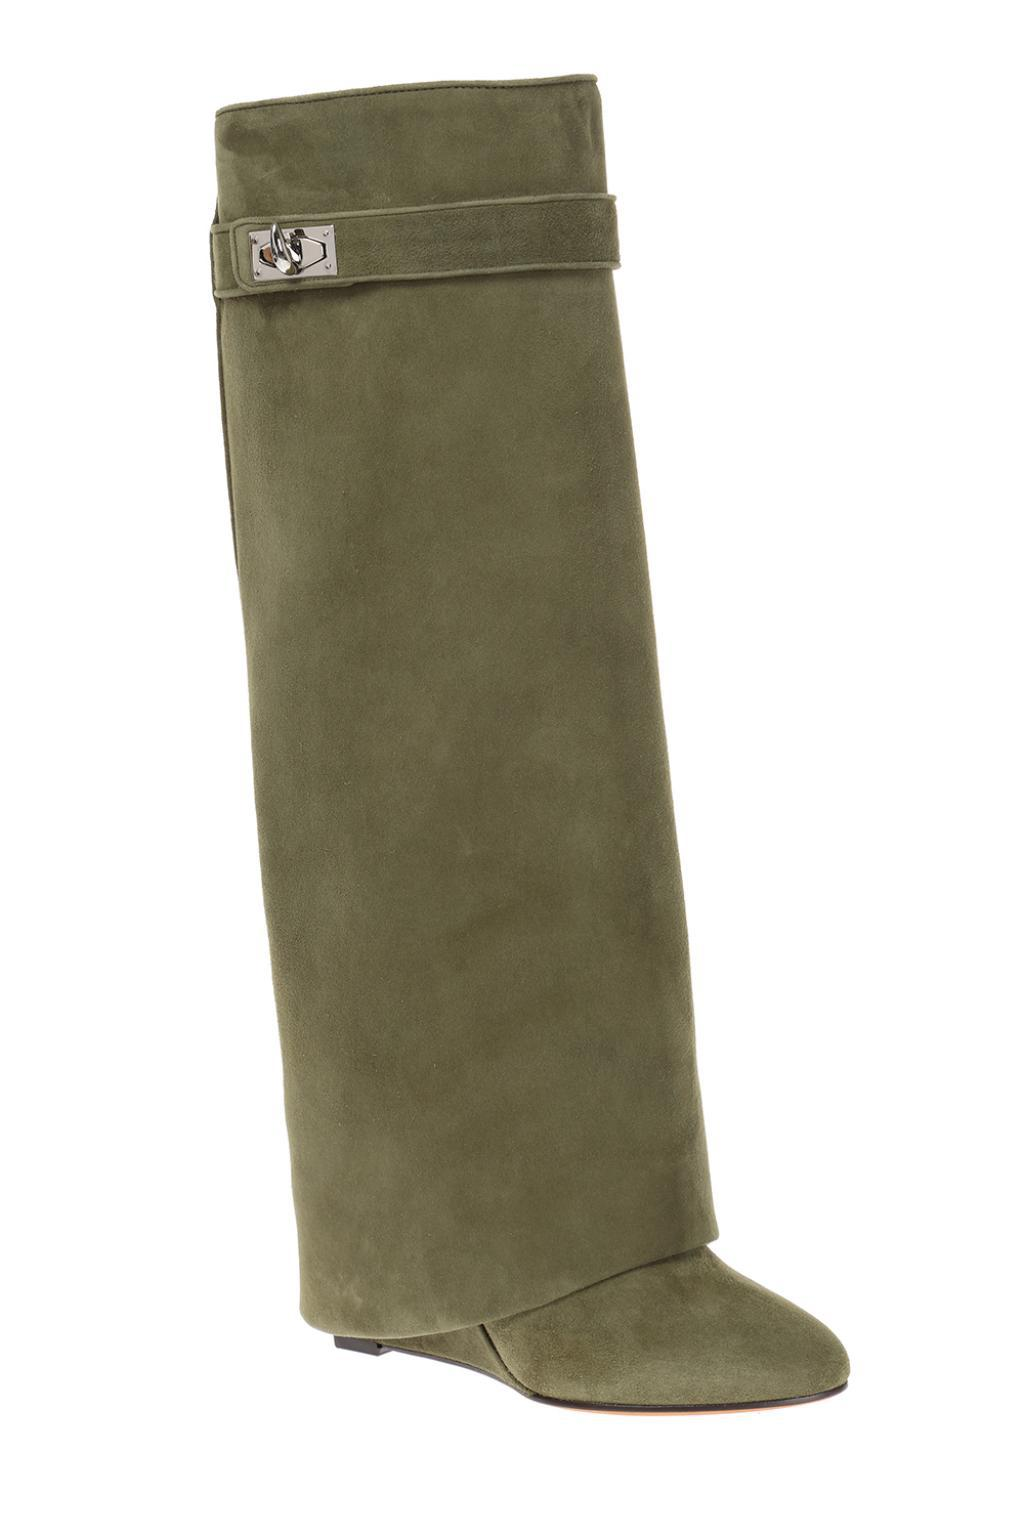 Givenchy Suede Folded Overlay Boots in Green